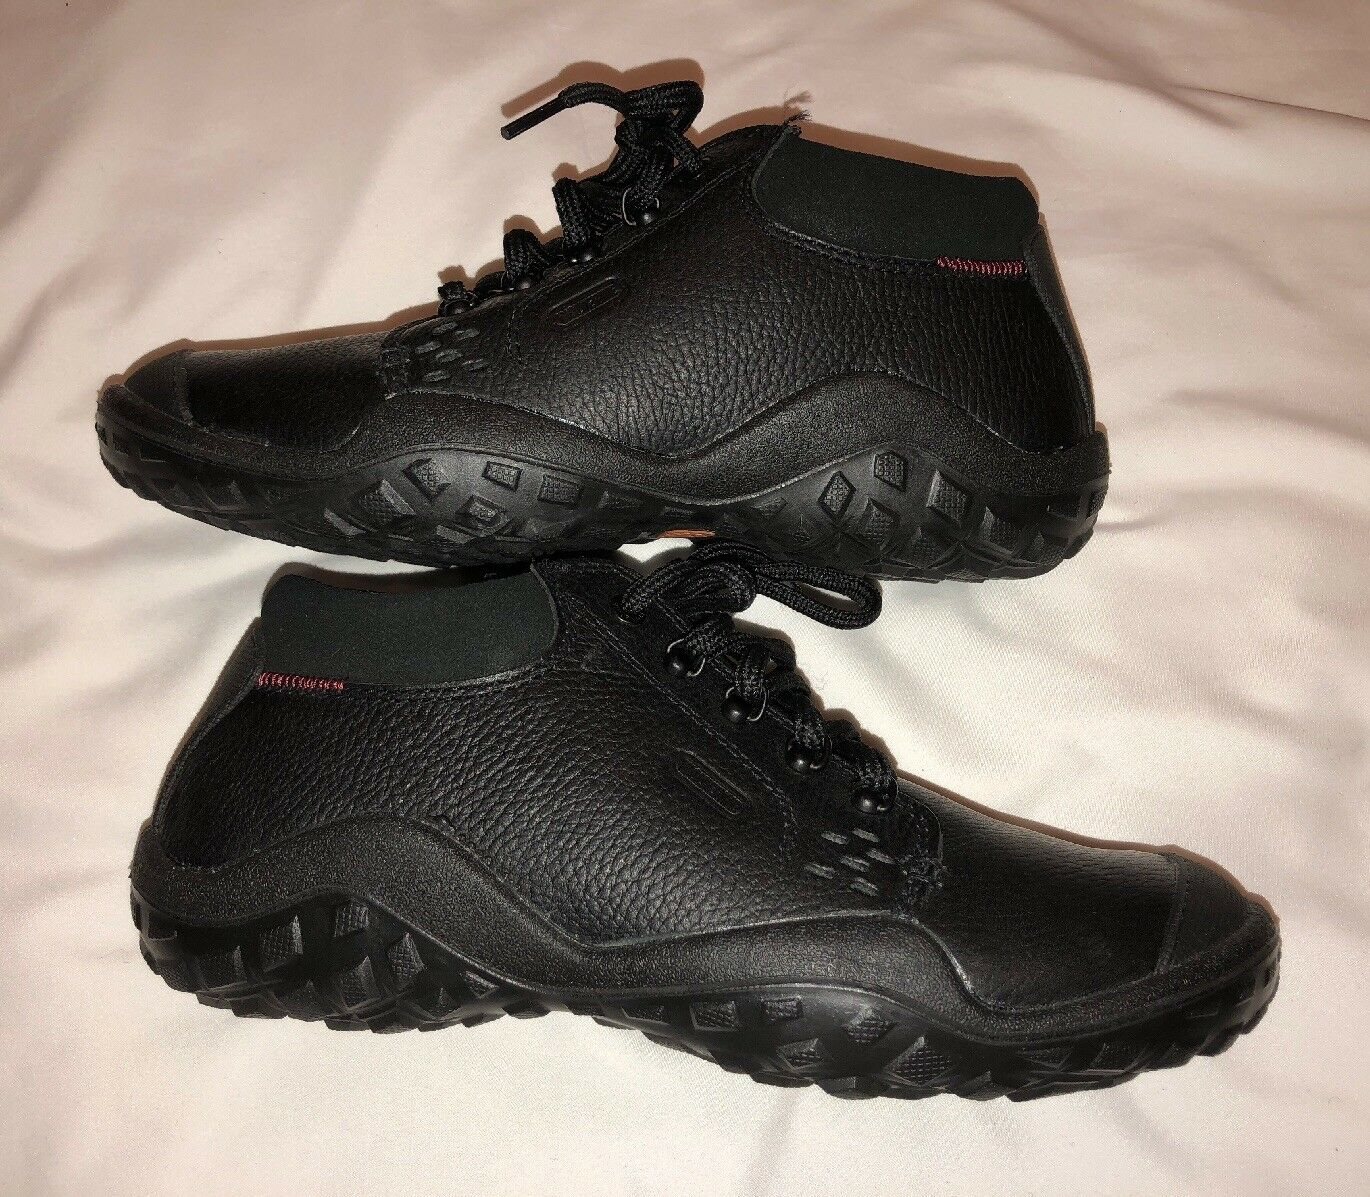 WOLVERINE MENS BLACK SHOES SIZE 8.5 NEW